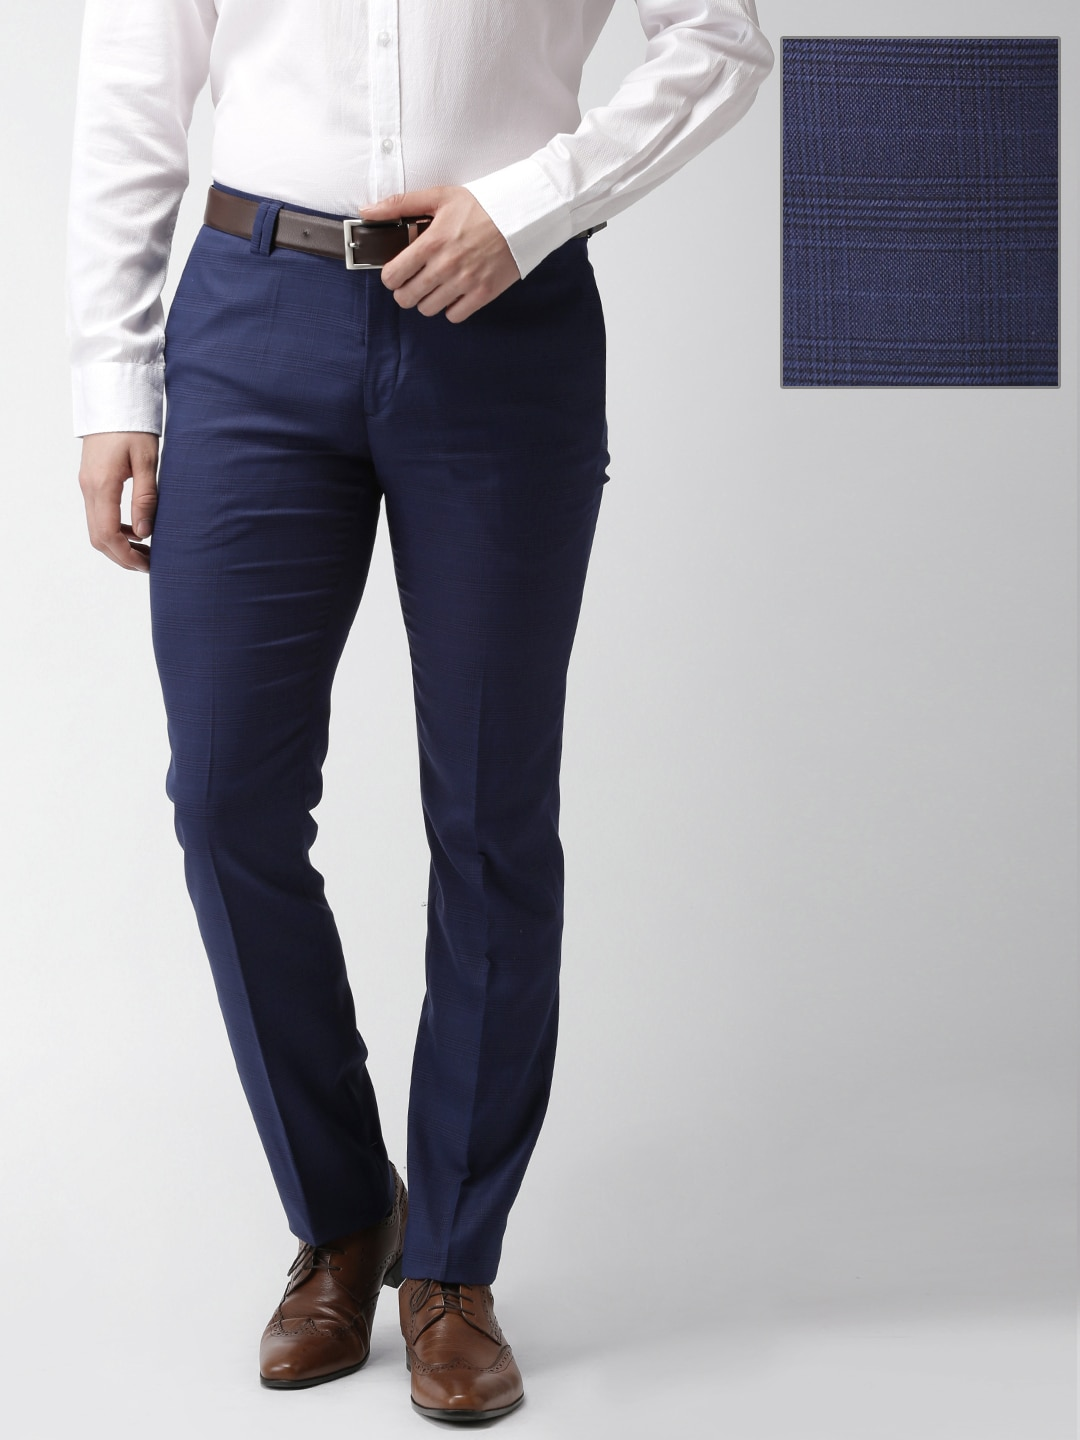 Slim Fit Trousers Buy Online In India Tendencies Navy Chinos Short 32